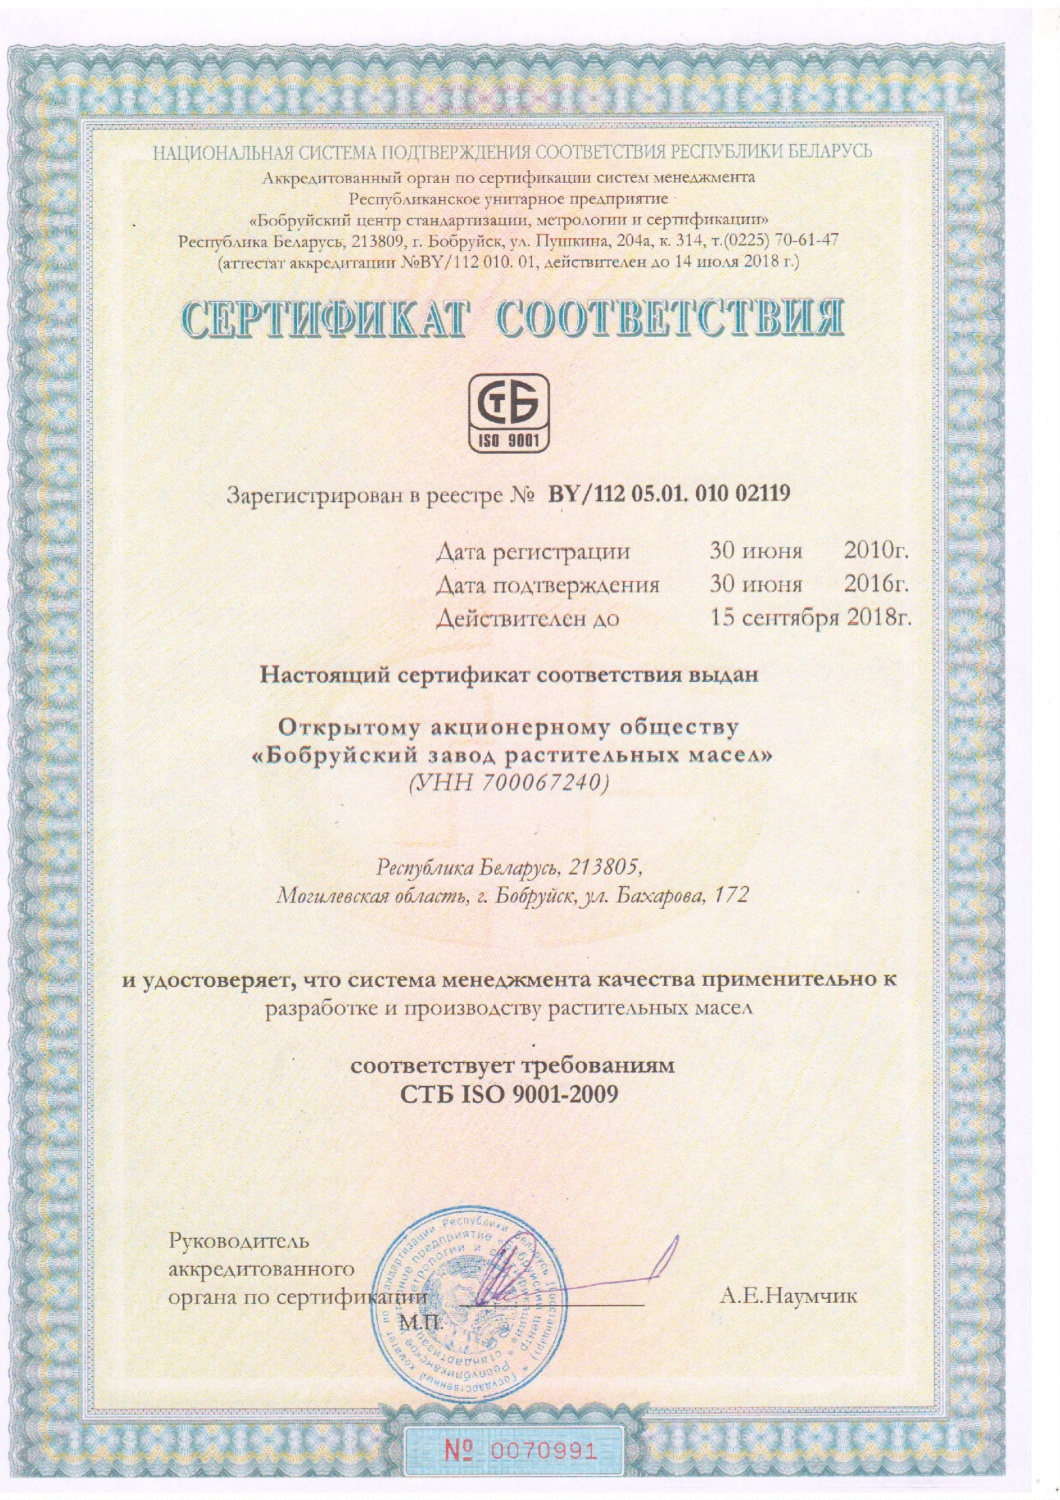 The certificate for the quality management system as applied to the development and production of vegetable oils.